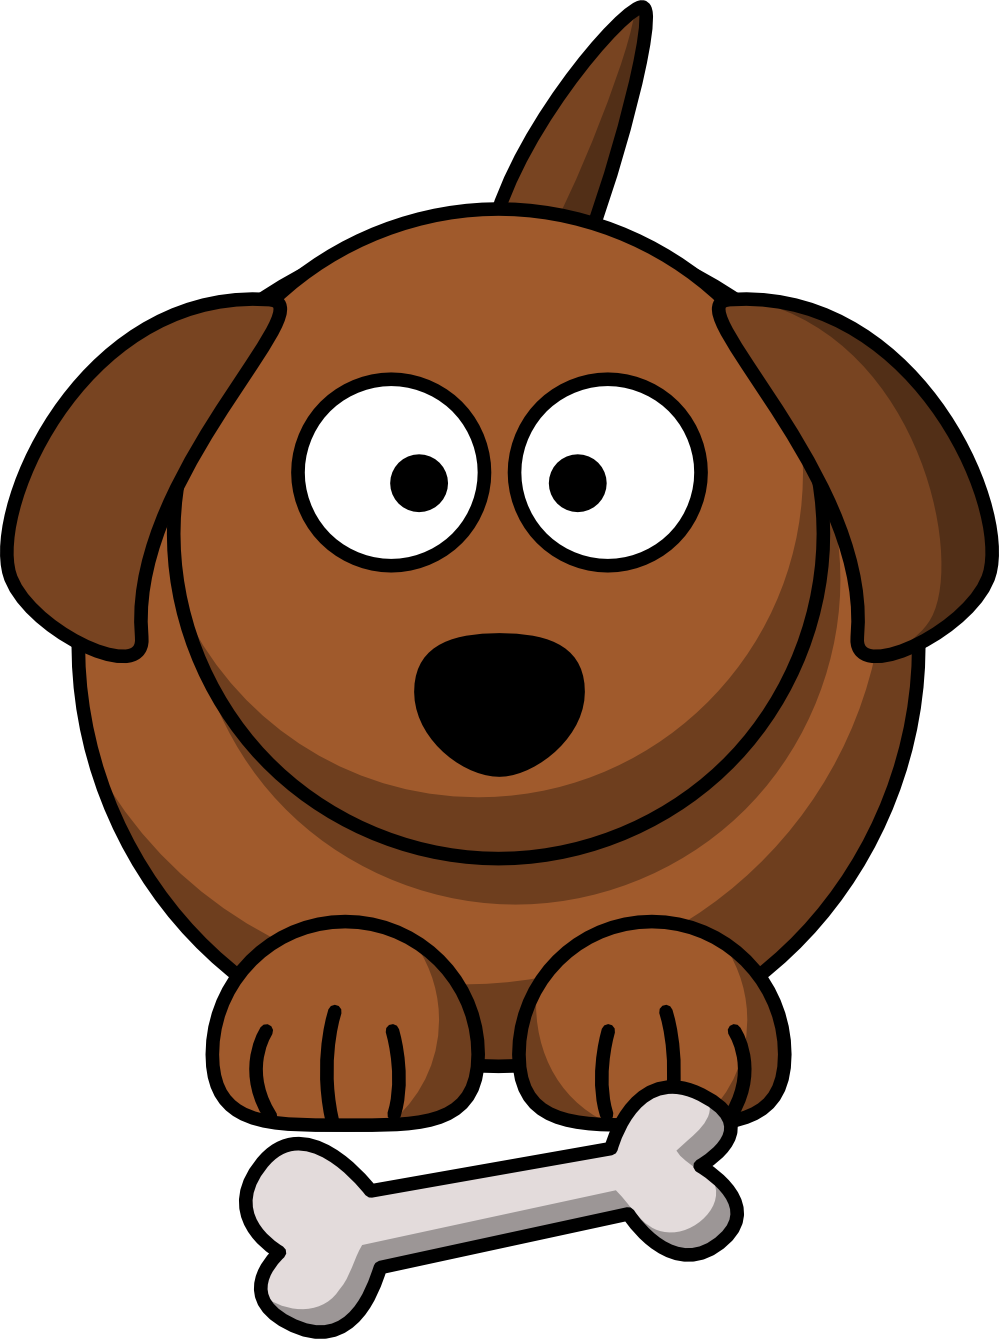 35 cartoon animal images free cliparts that you can download to you ...